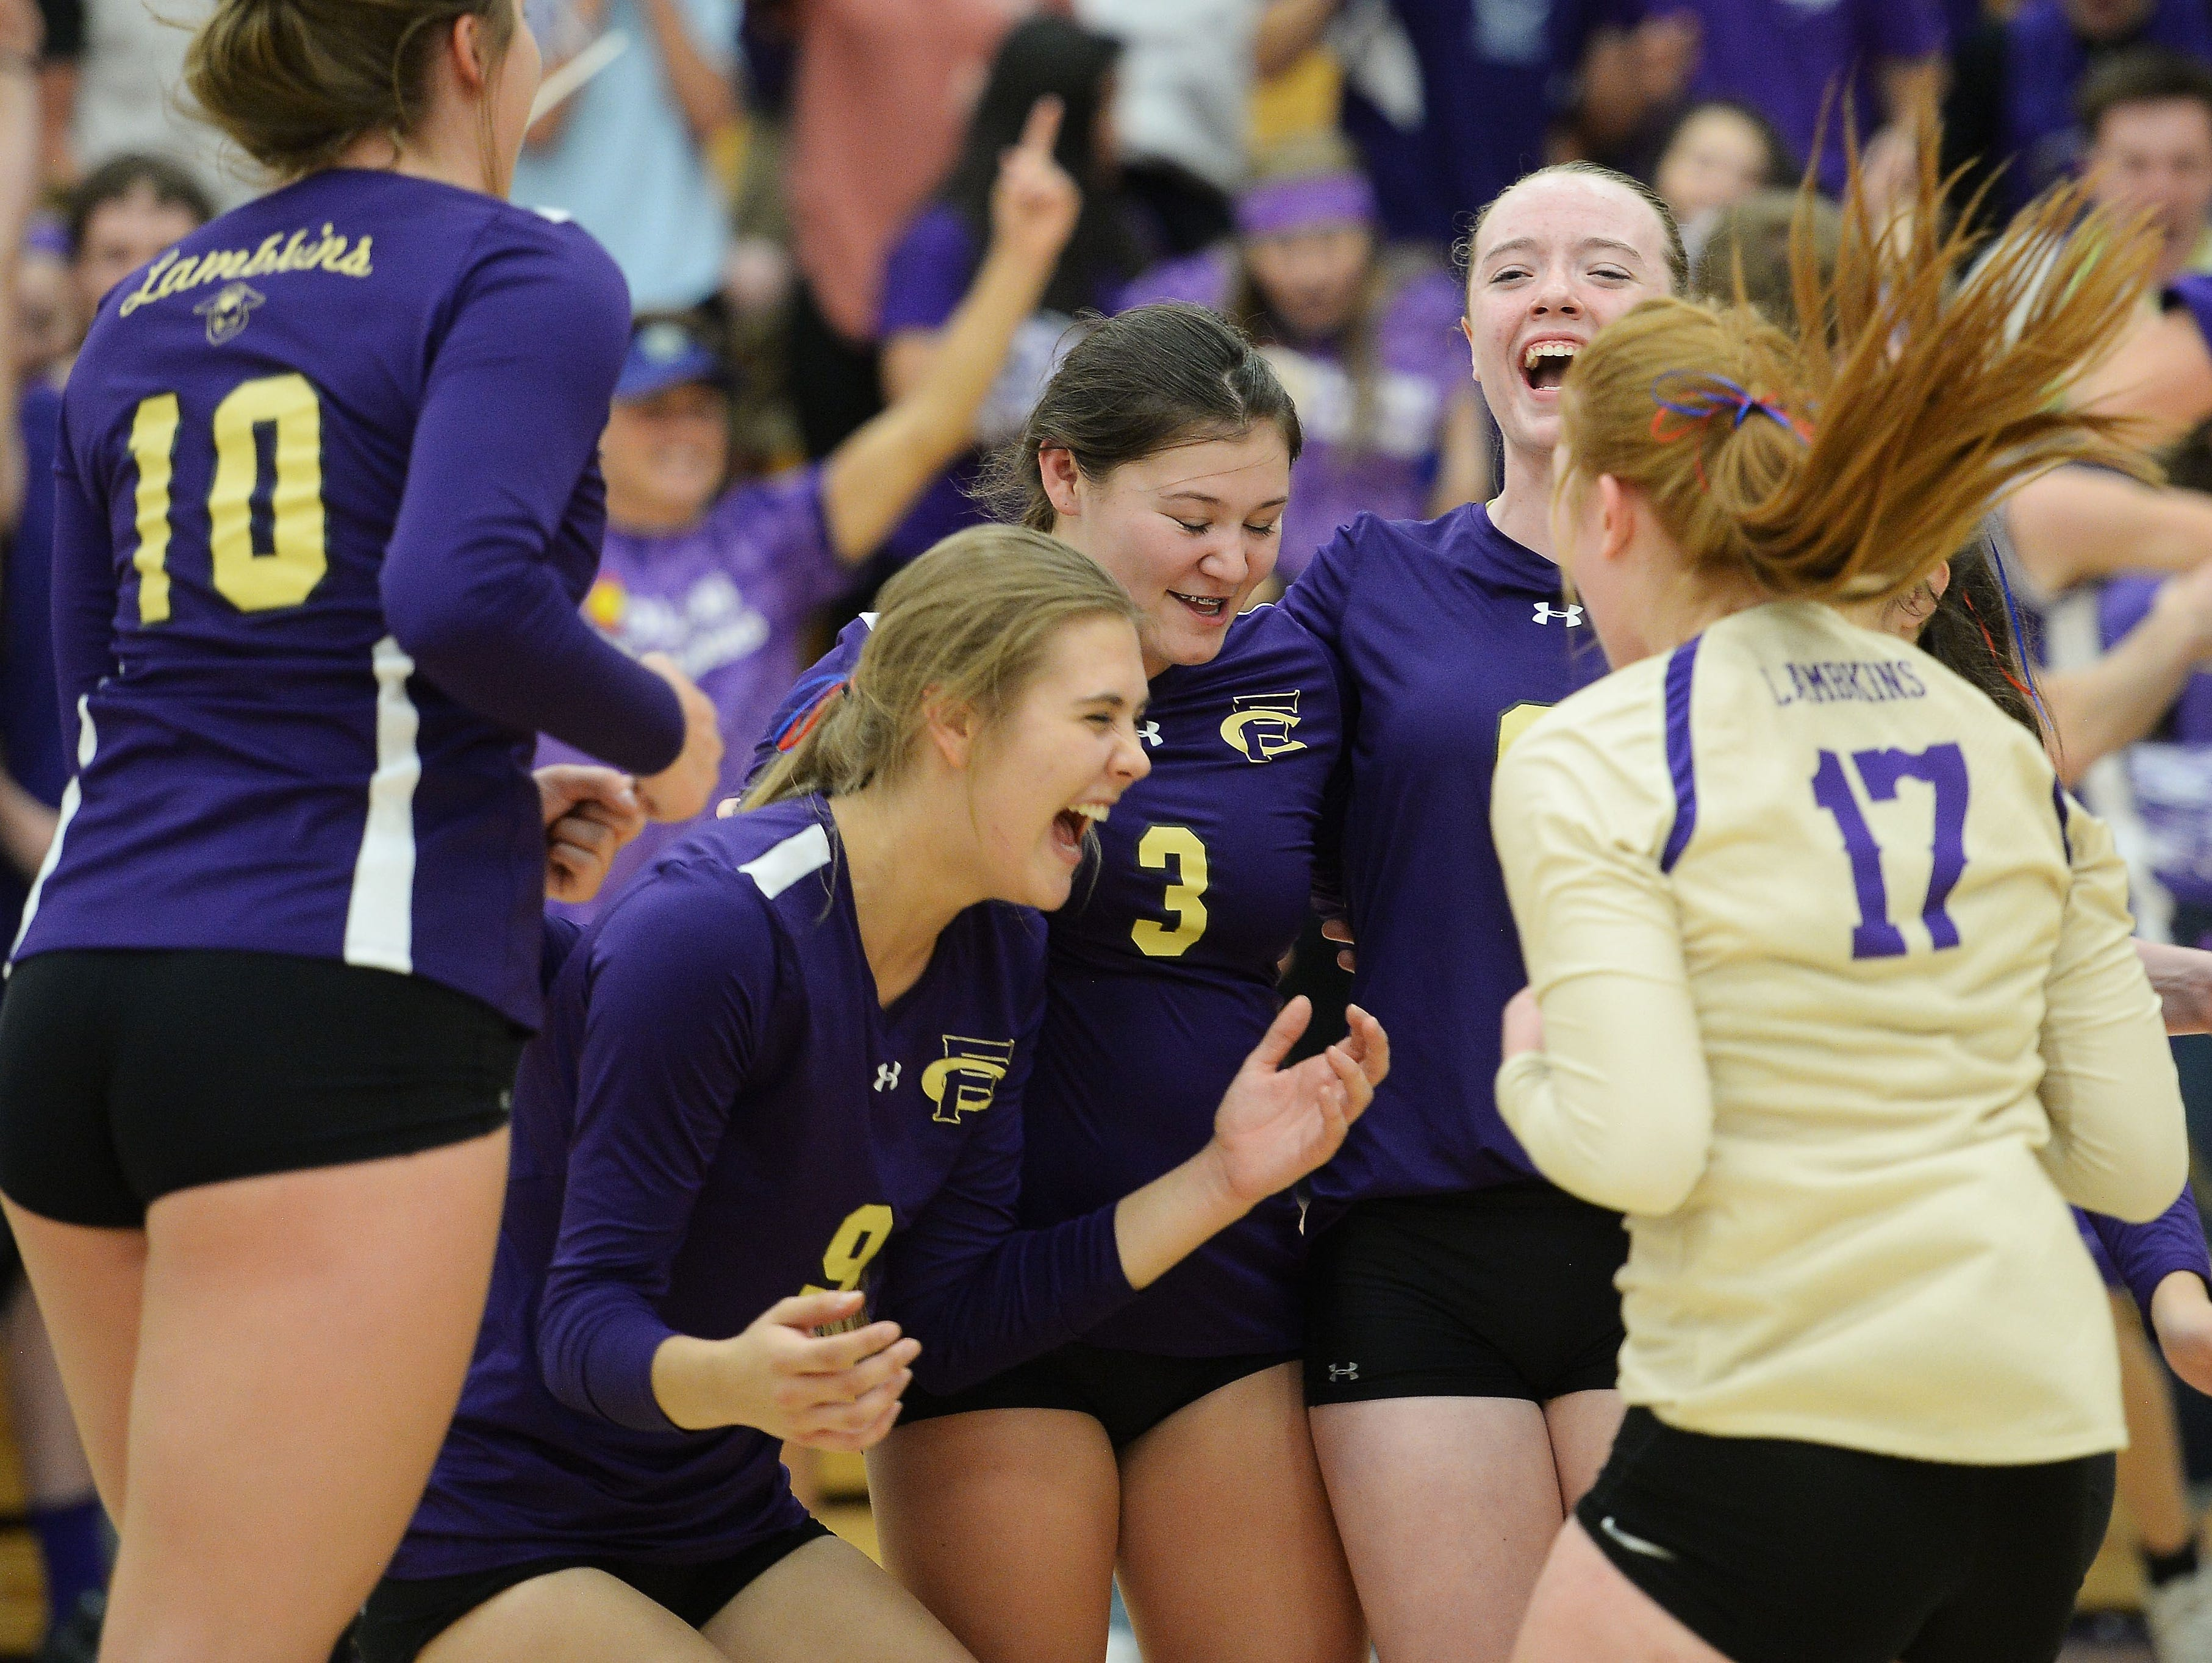 Fort Collins High School volleyball players celebrate a point during their sweep of rival Rocky Mountain on Tuesday night.